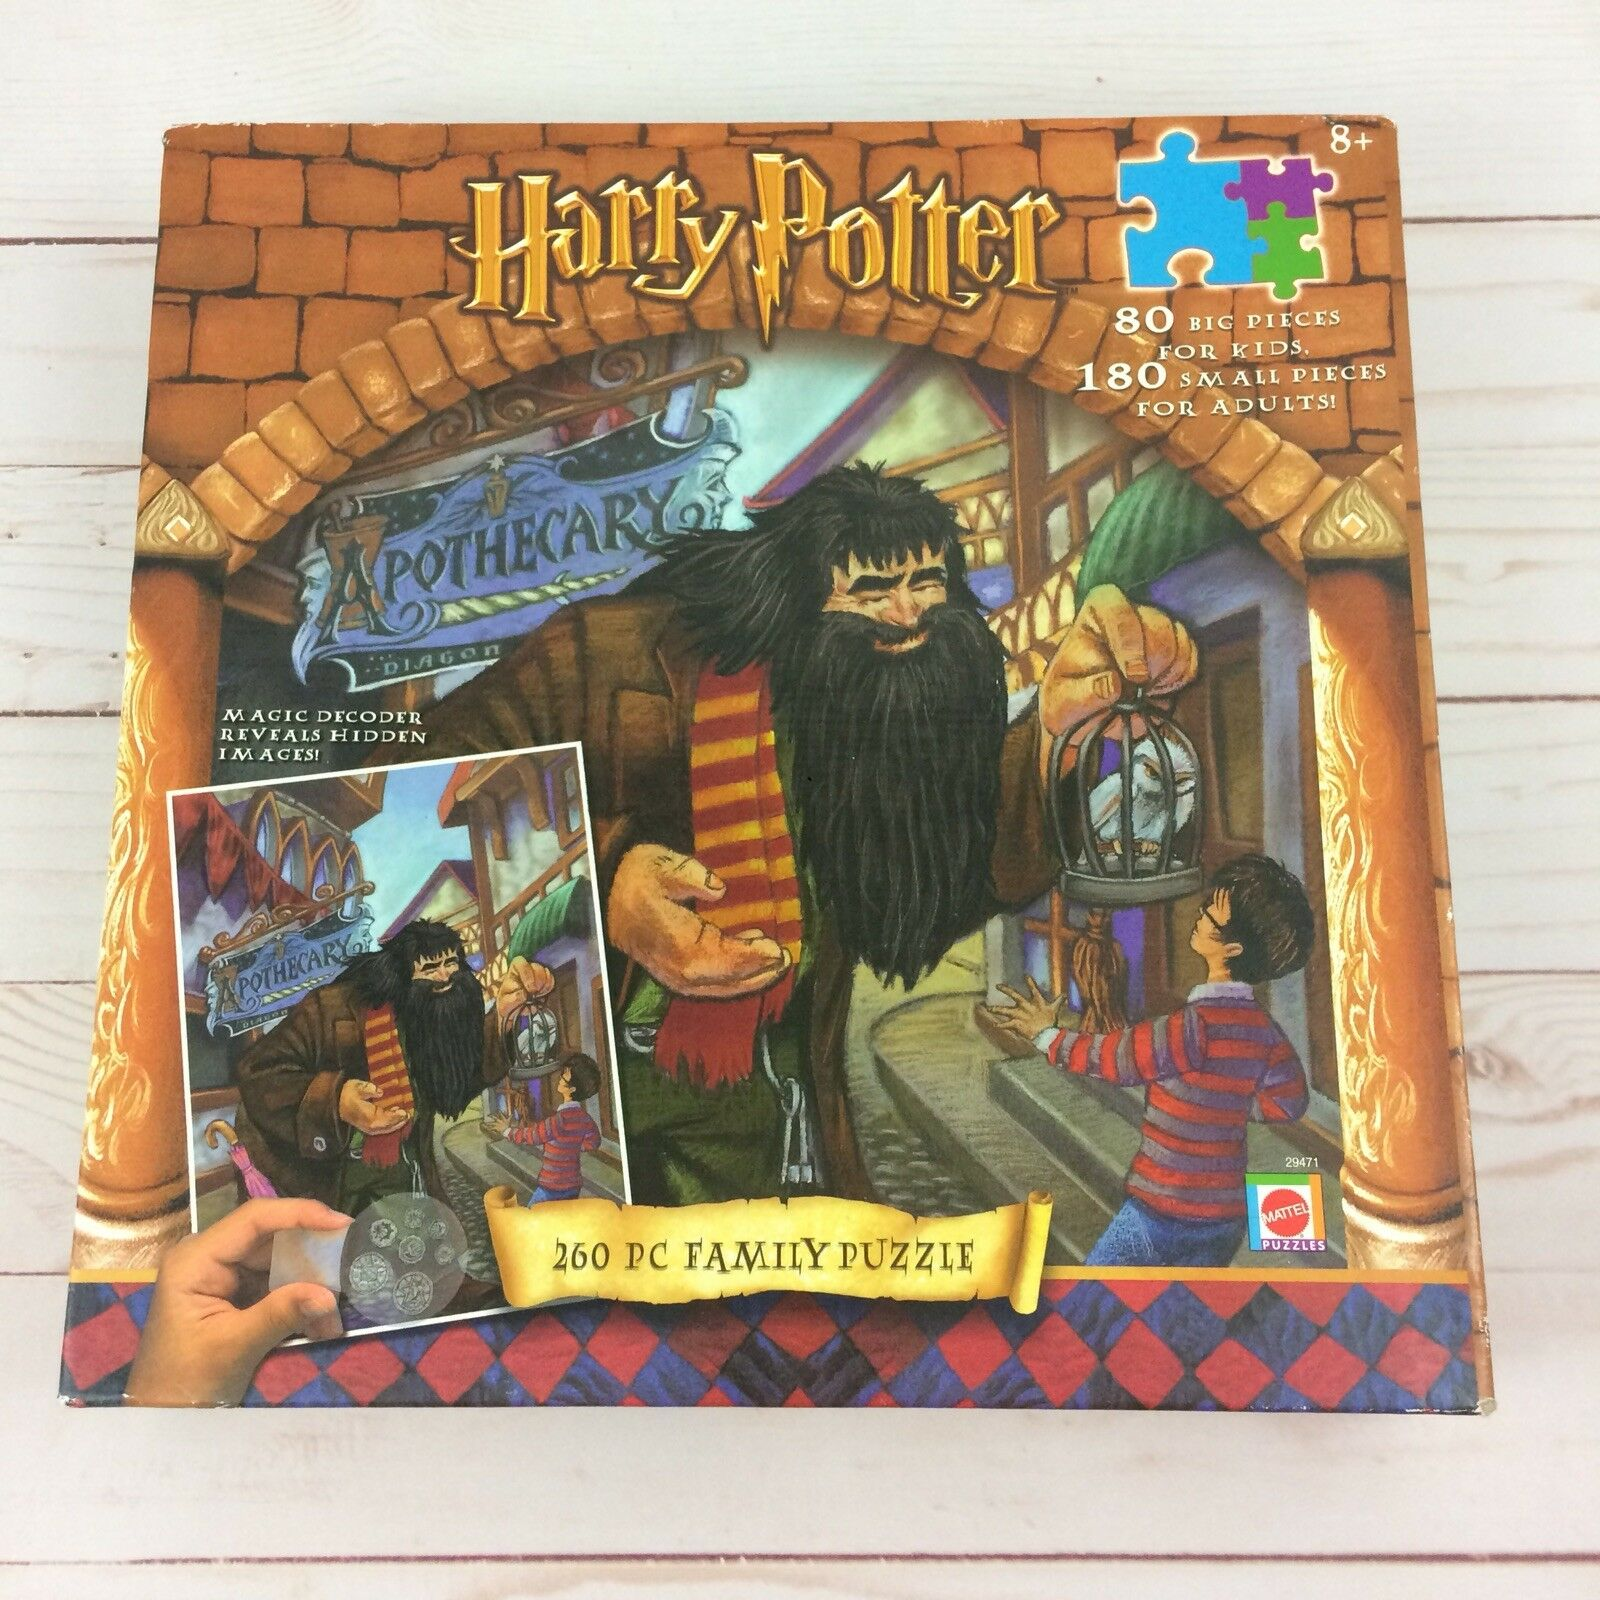 2001 Sealed Harry Potter Hagrid 260 Piece Puzzle By Mattel